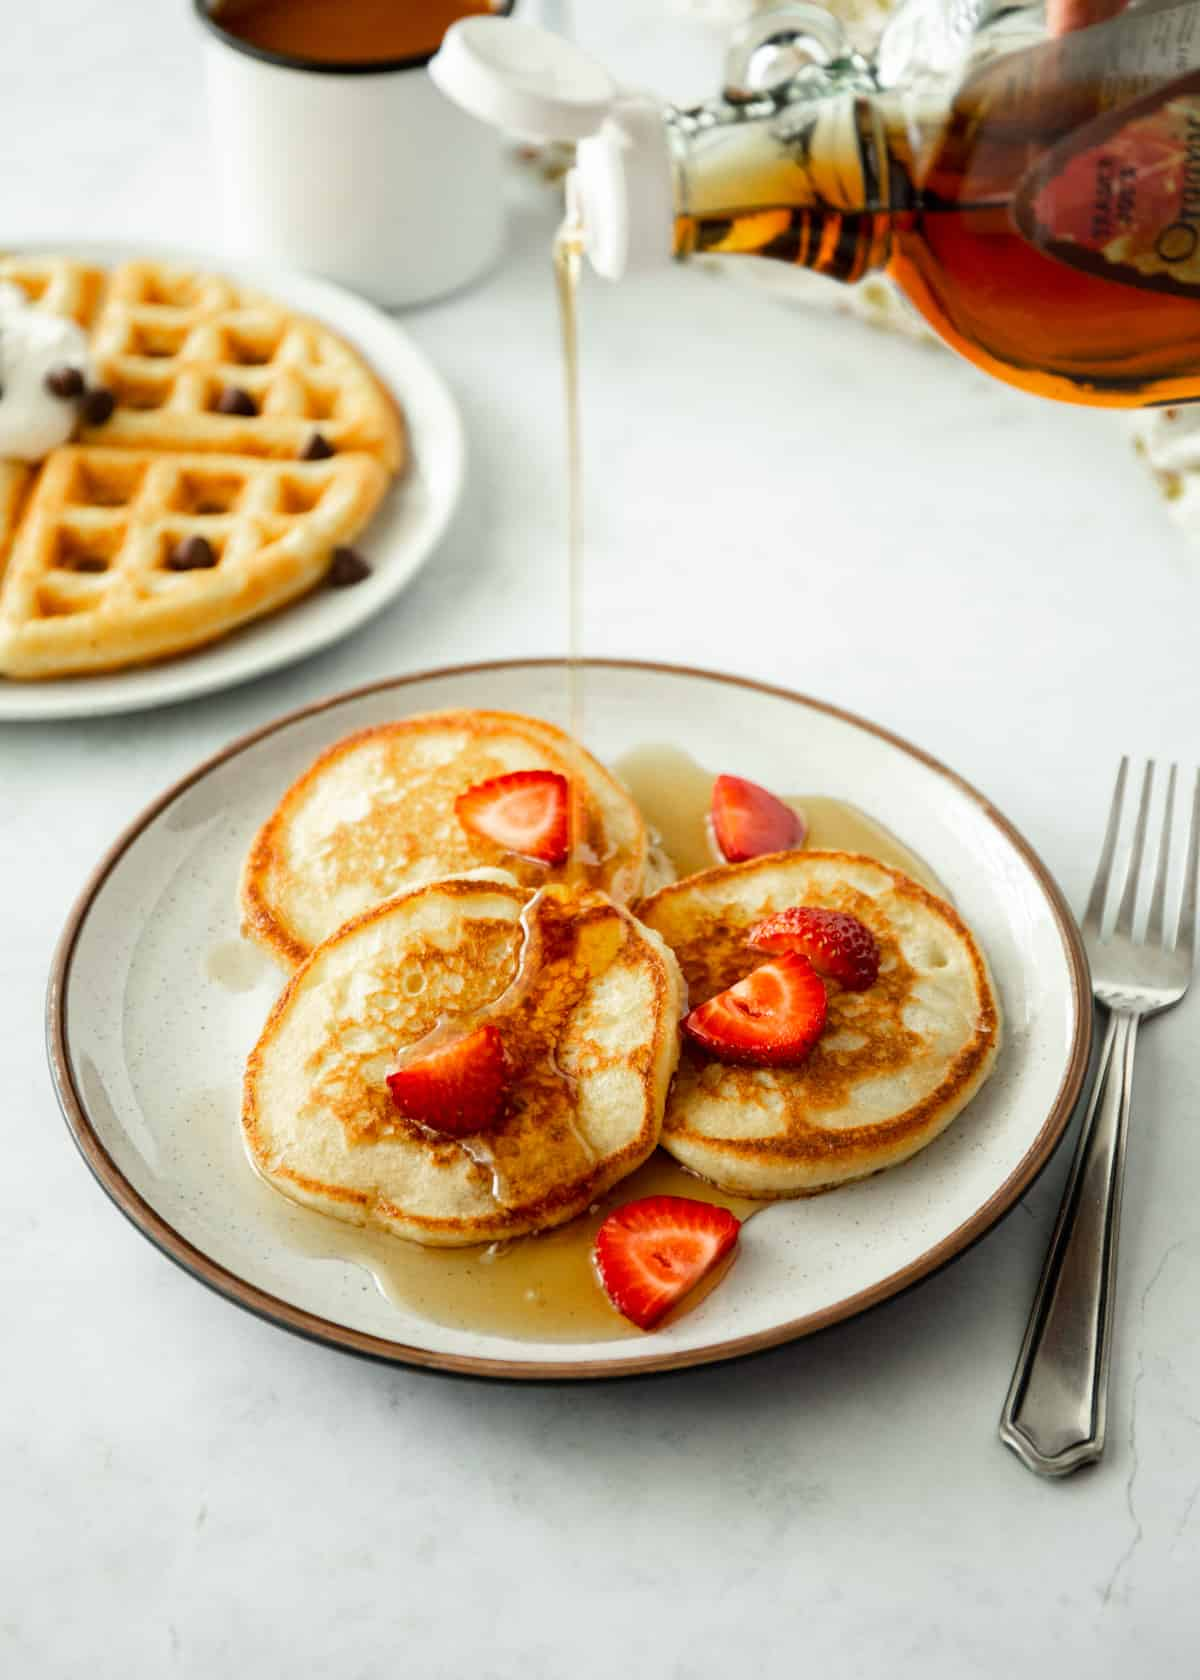 pouring syrup over pancakes with strawberries